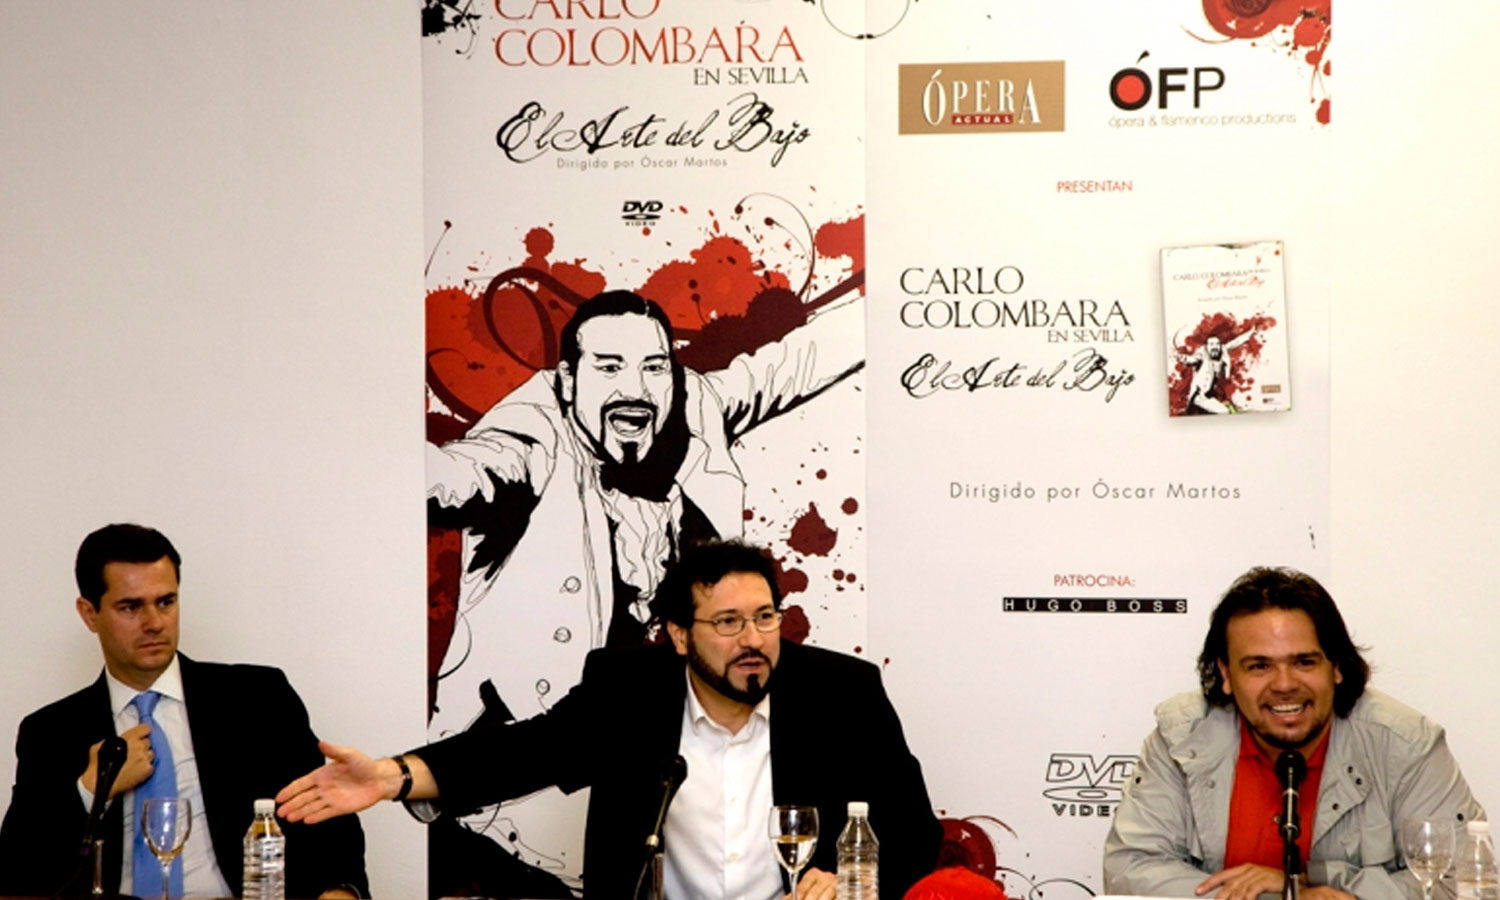 PRESS CONFERENCE DVD LAUNCH CARLO COLOMBARA  SEVILLE/SPAIN // 2008 //